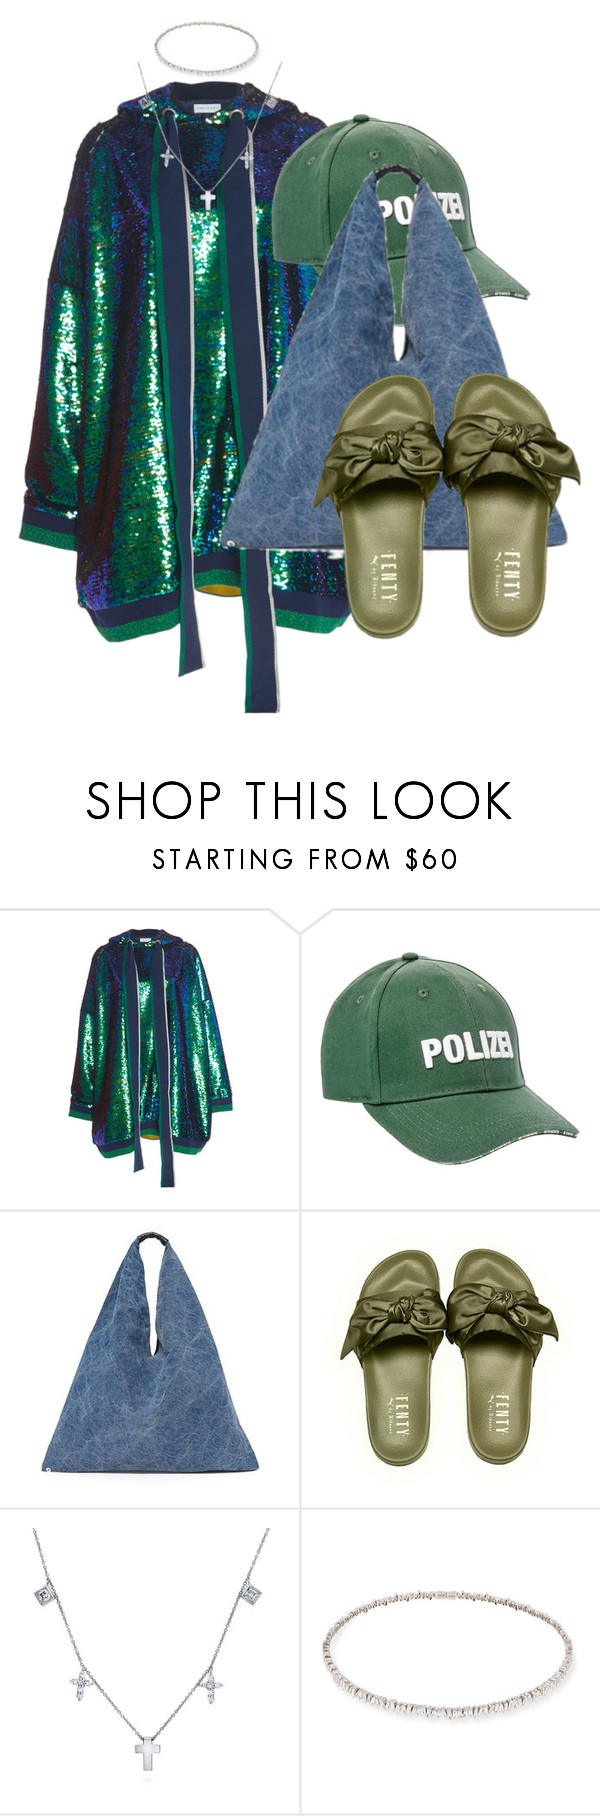 """Untitled #1947"" by palemermaid ❤ liked on Polyvore featuring Mira Mikati, Vetements, MM6 Maison Margiela, BERRICLE and Suzanne Kalan"